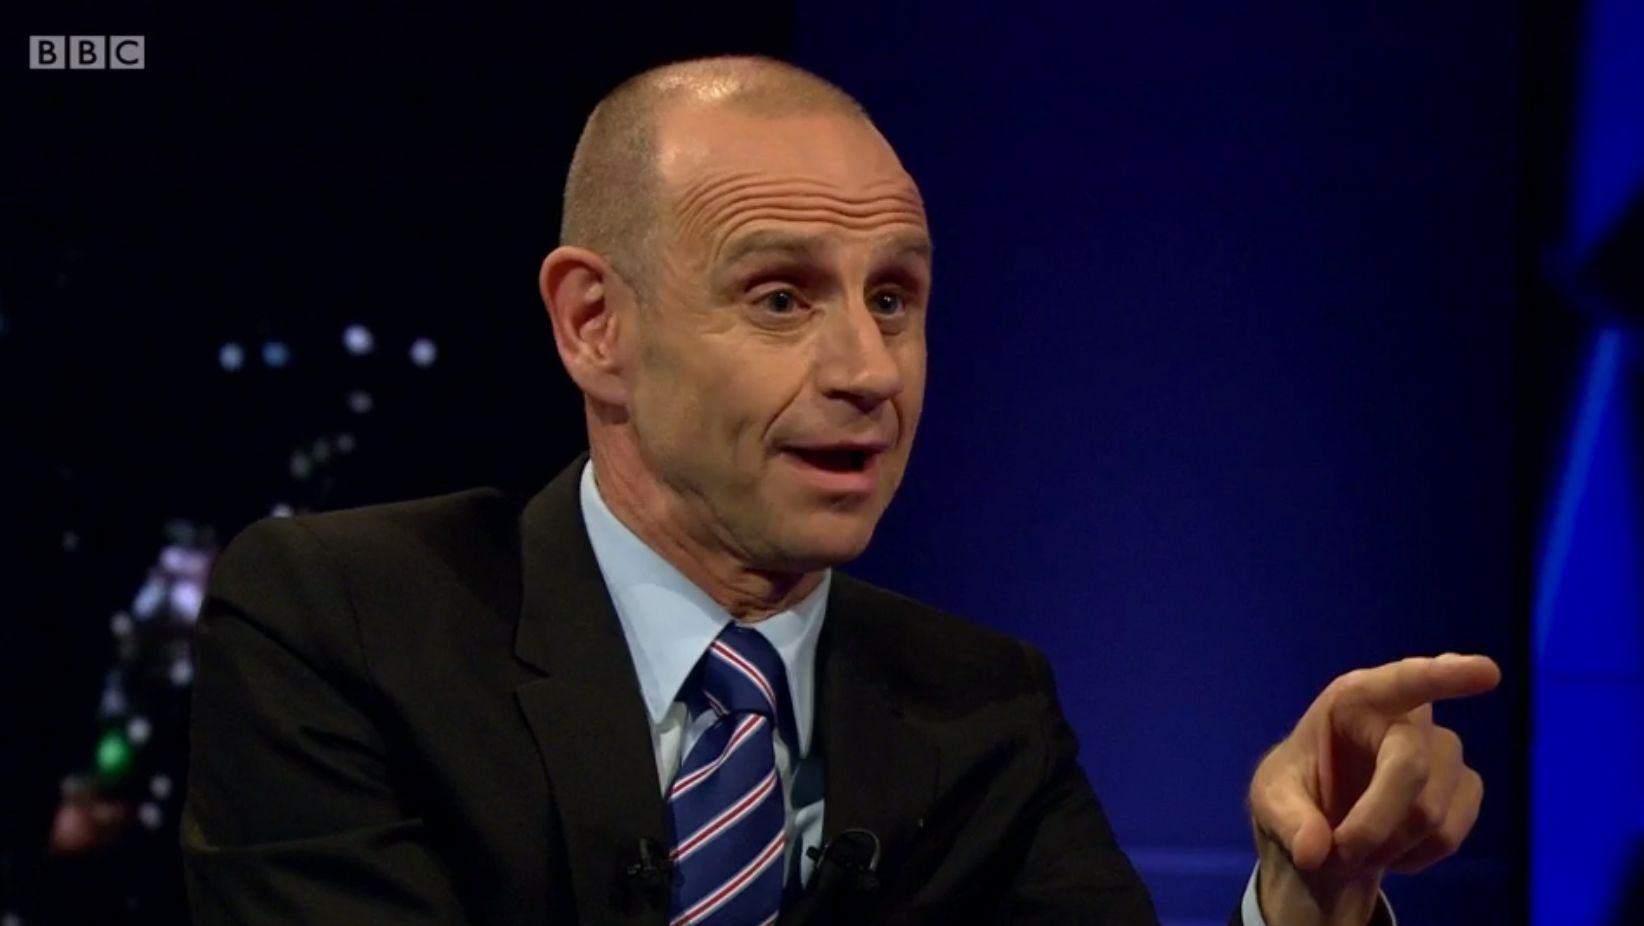 Evan Davis Seriously Struggles To Hide Frustration With Brexit